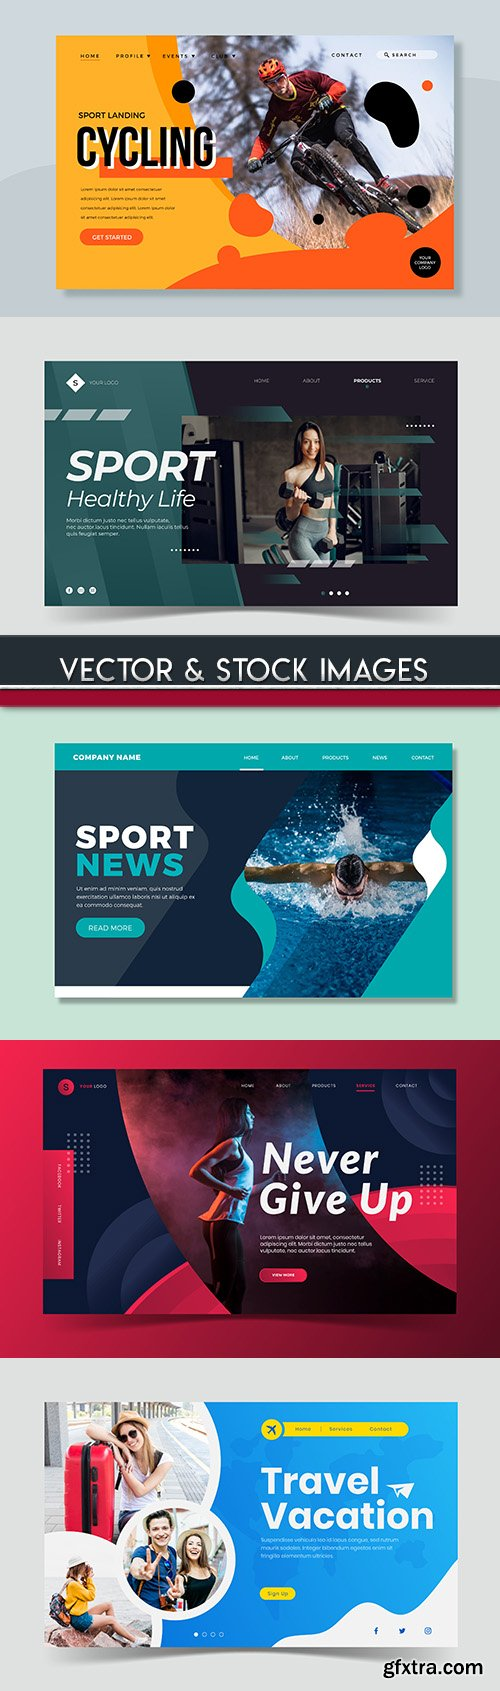 Sports and lifestyle page illustration template